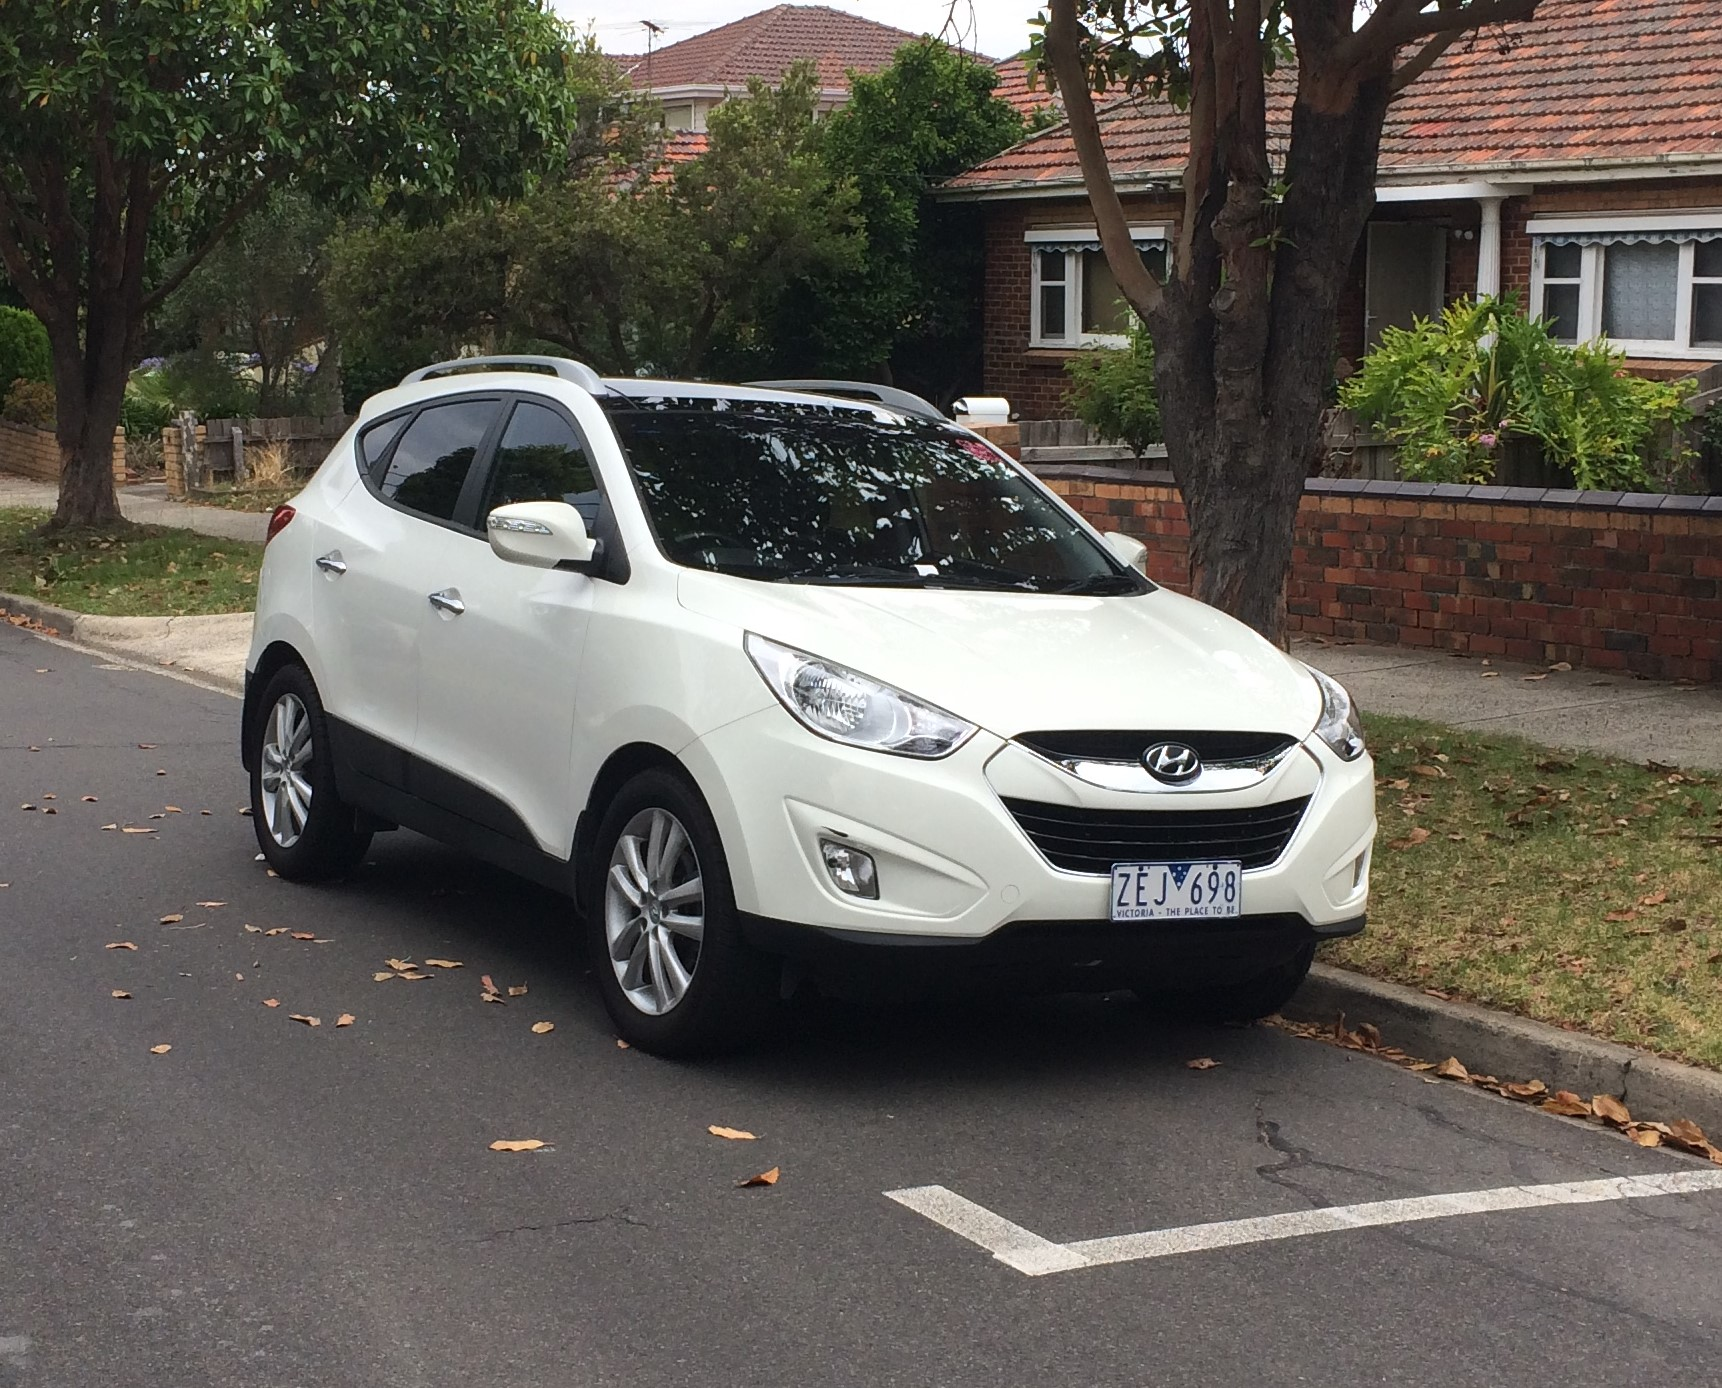 Picture of Kimberley's 2012 Hyundai iX35